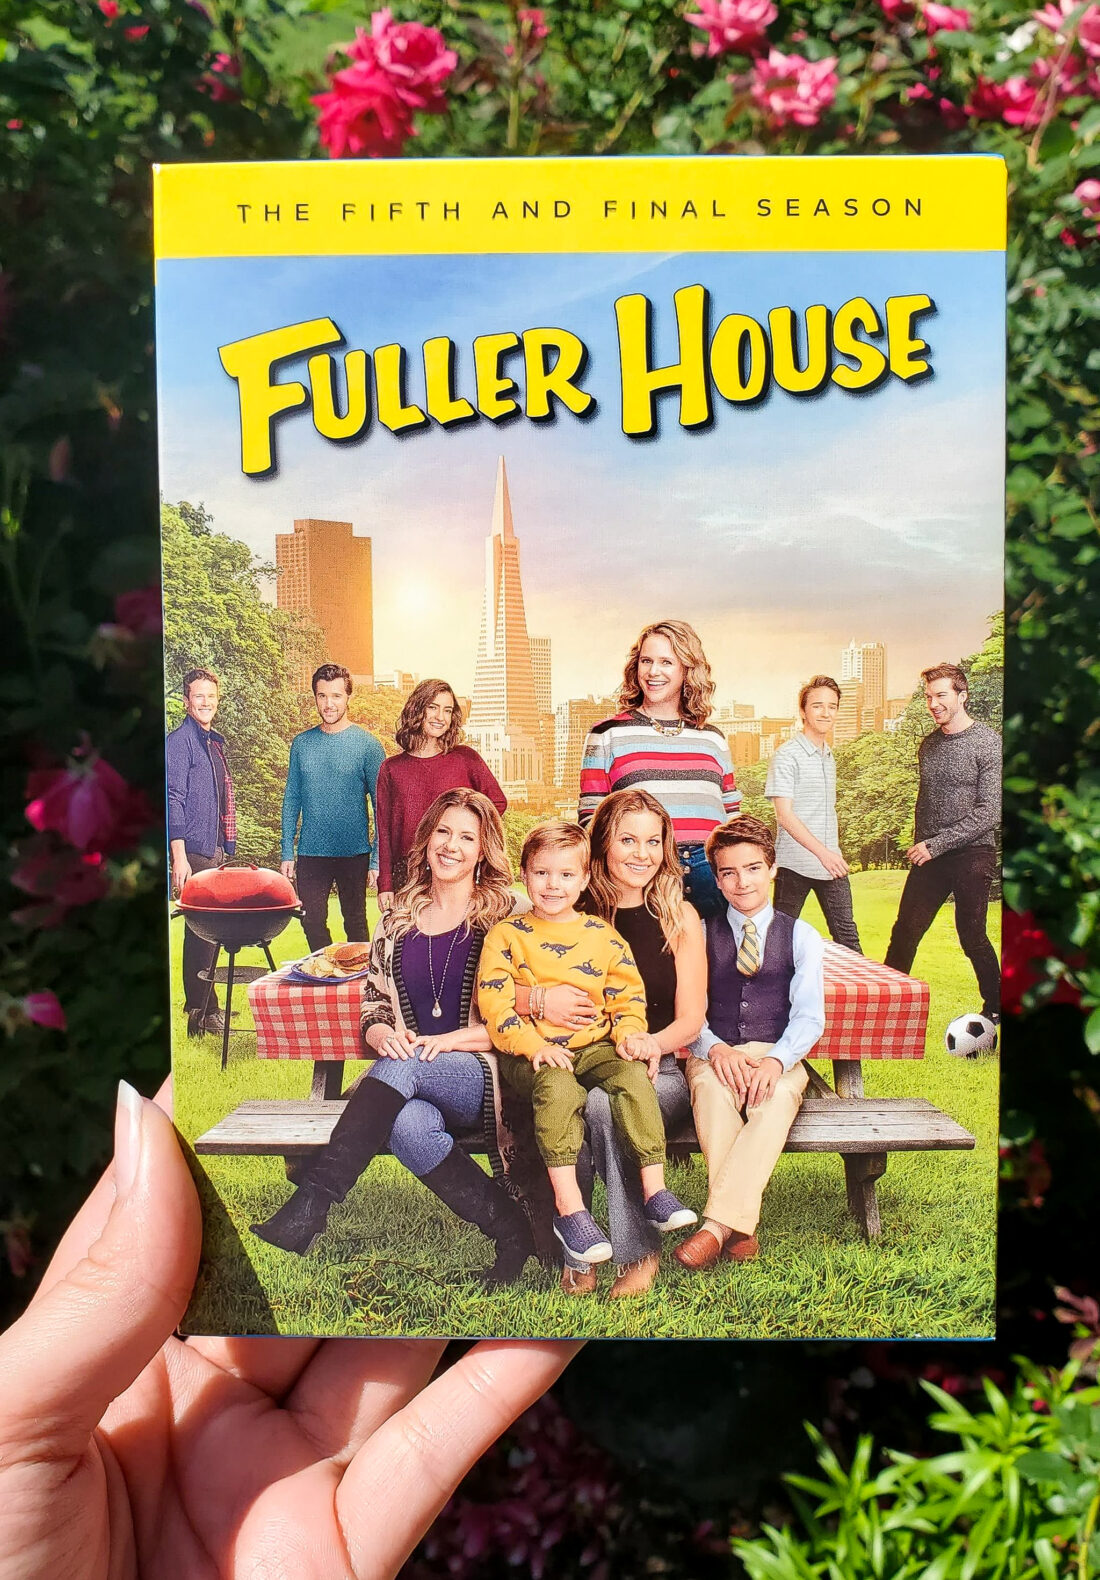 Get set for 18 hilarious new episodes, featuring guest appearances by the original Full House cast. Fuller House: The Complete Series, which includes all five seasons of the series, will be available for fans to own on Digital and DVD on June 8th.